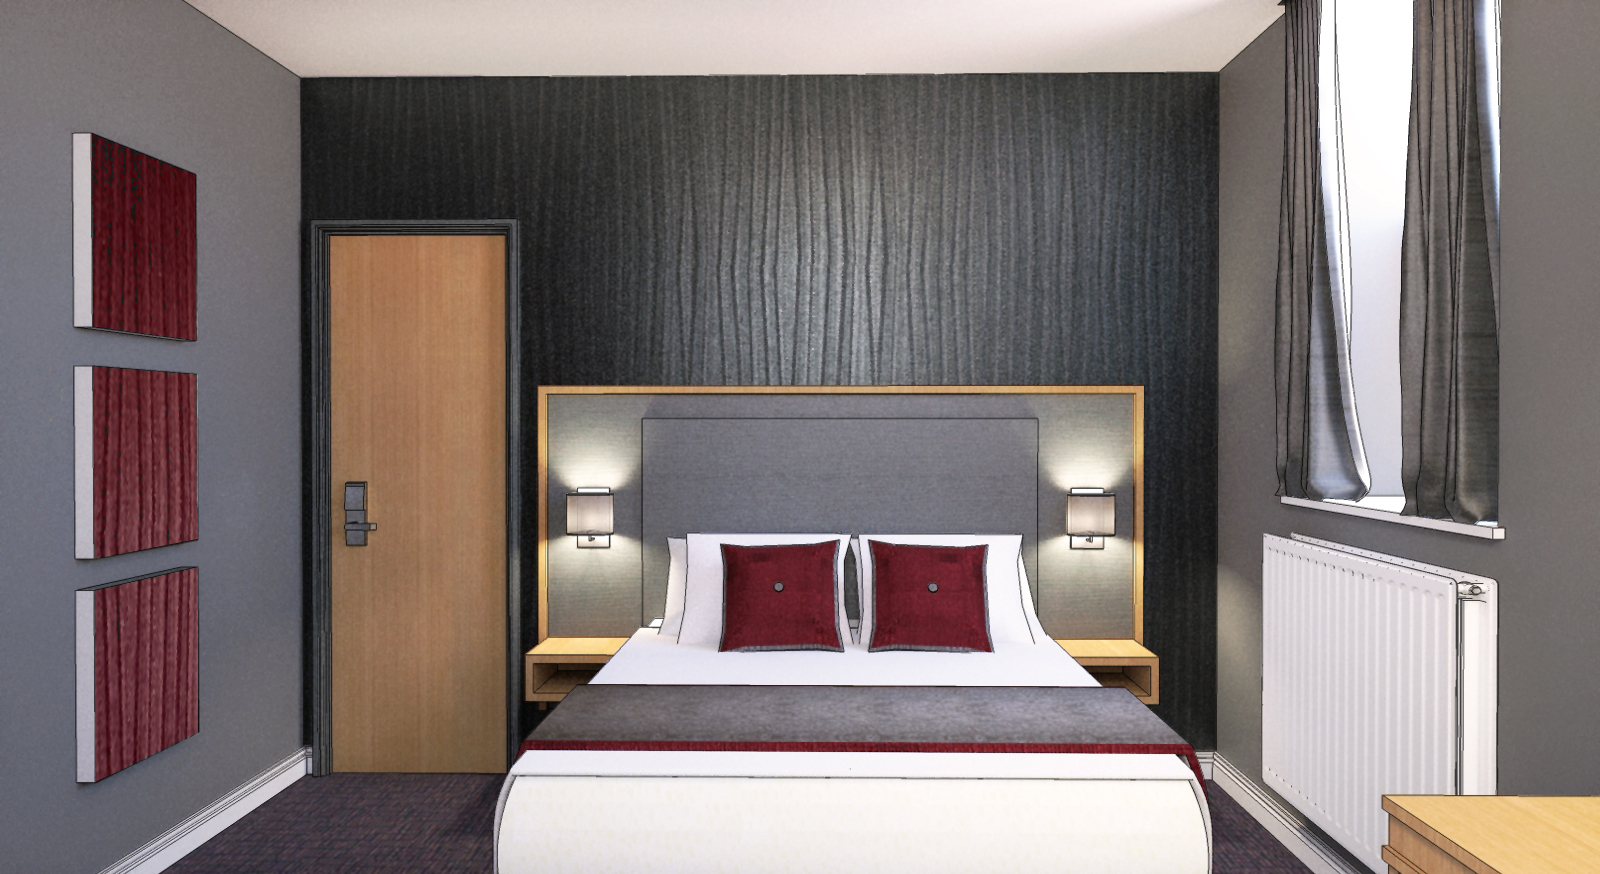 Ashorne Hill Hotel Bedroom Refurbishment Nearing Completion By Studio